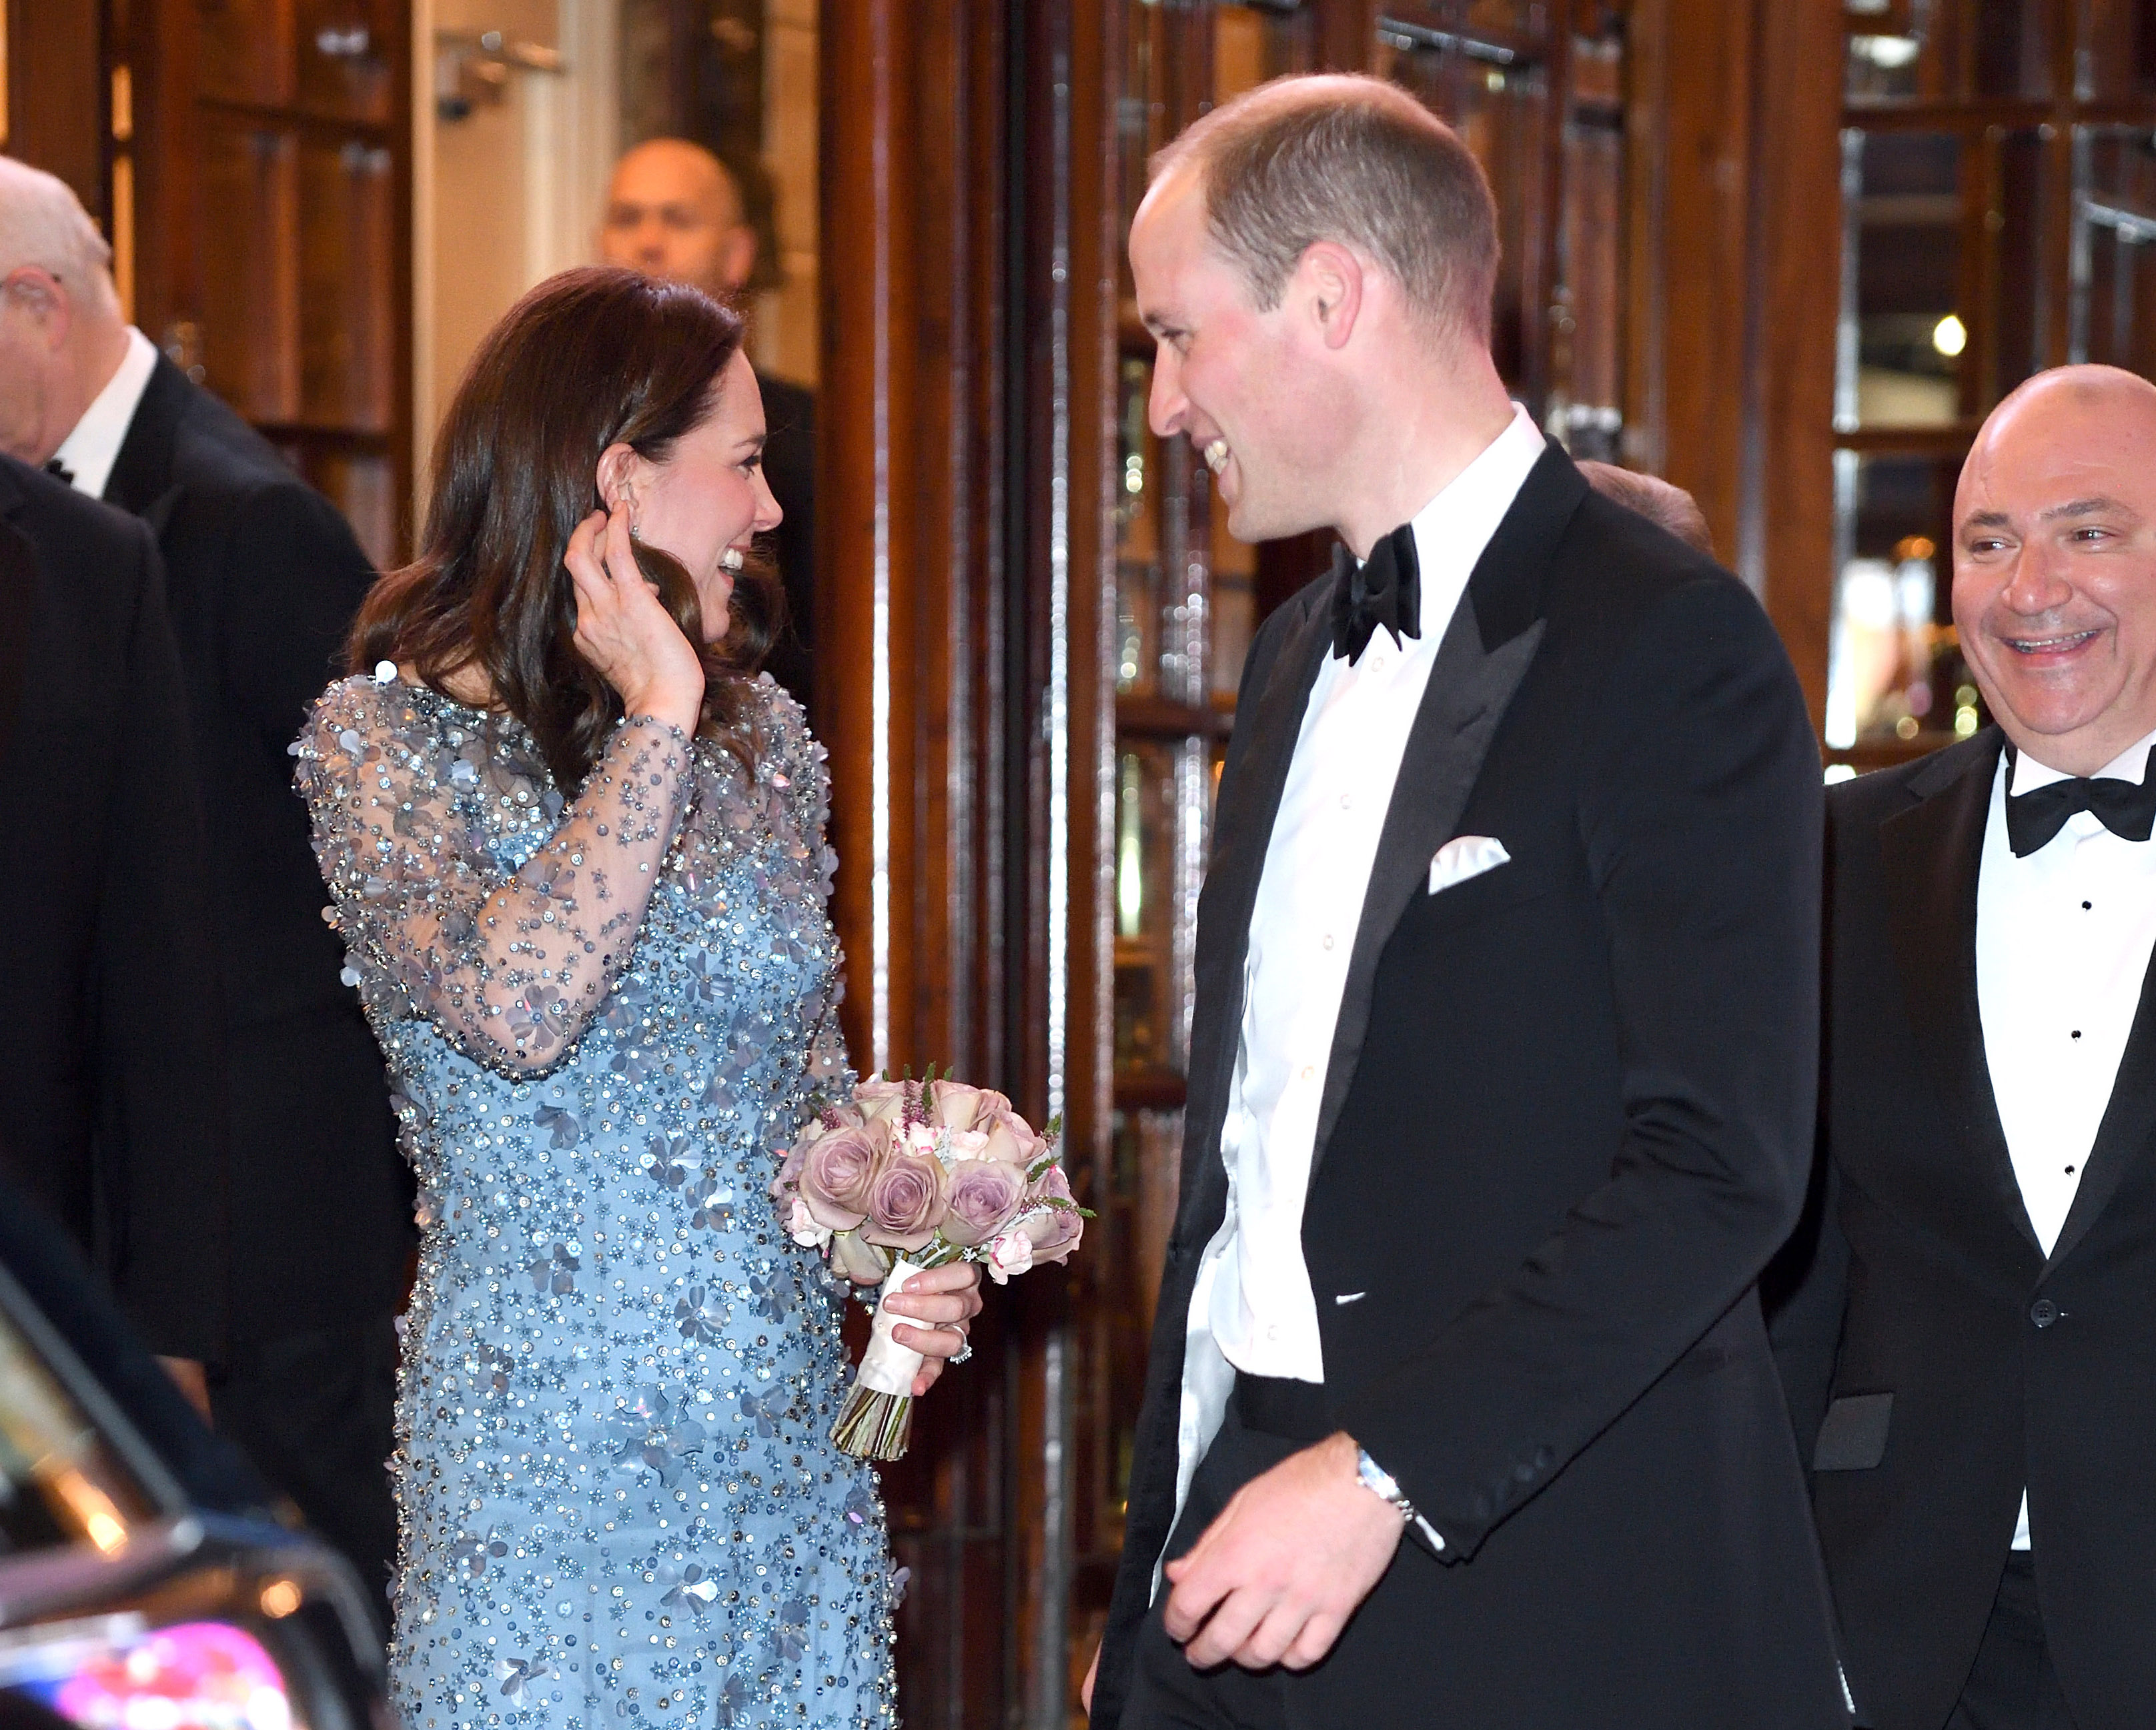 LONDON, ENGLAND - NOVEMBER 24:  Catherine, Duchess of Cambridge and Prince William, Duke of Cambridge attend the Royal Variety Performance  at the Palladium Theatre on November 24, 2017 in London, England.  (Photo by Karwai Tang/WireImage)